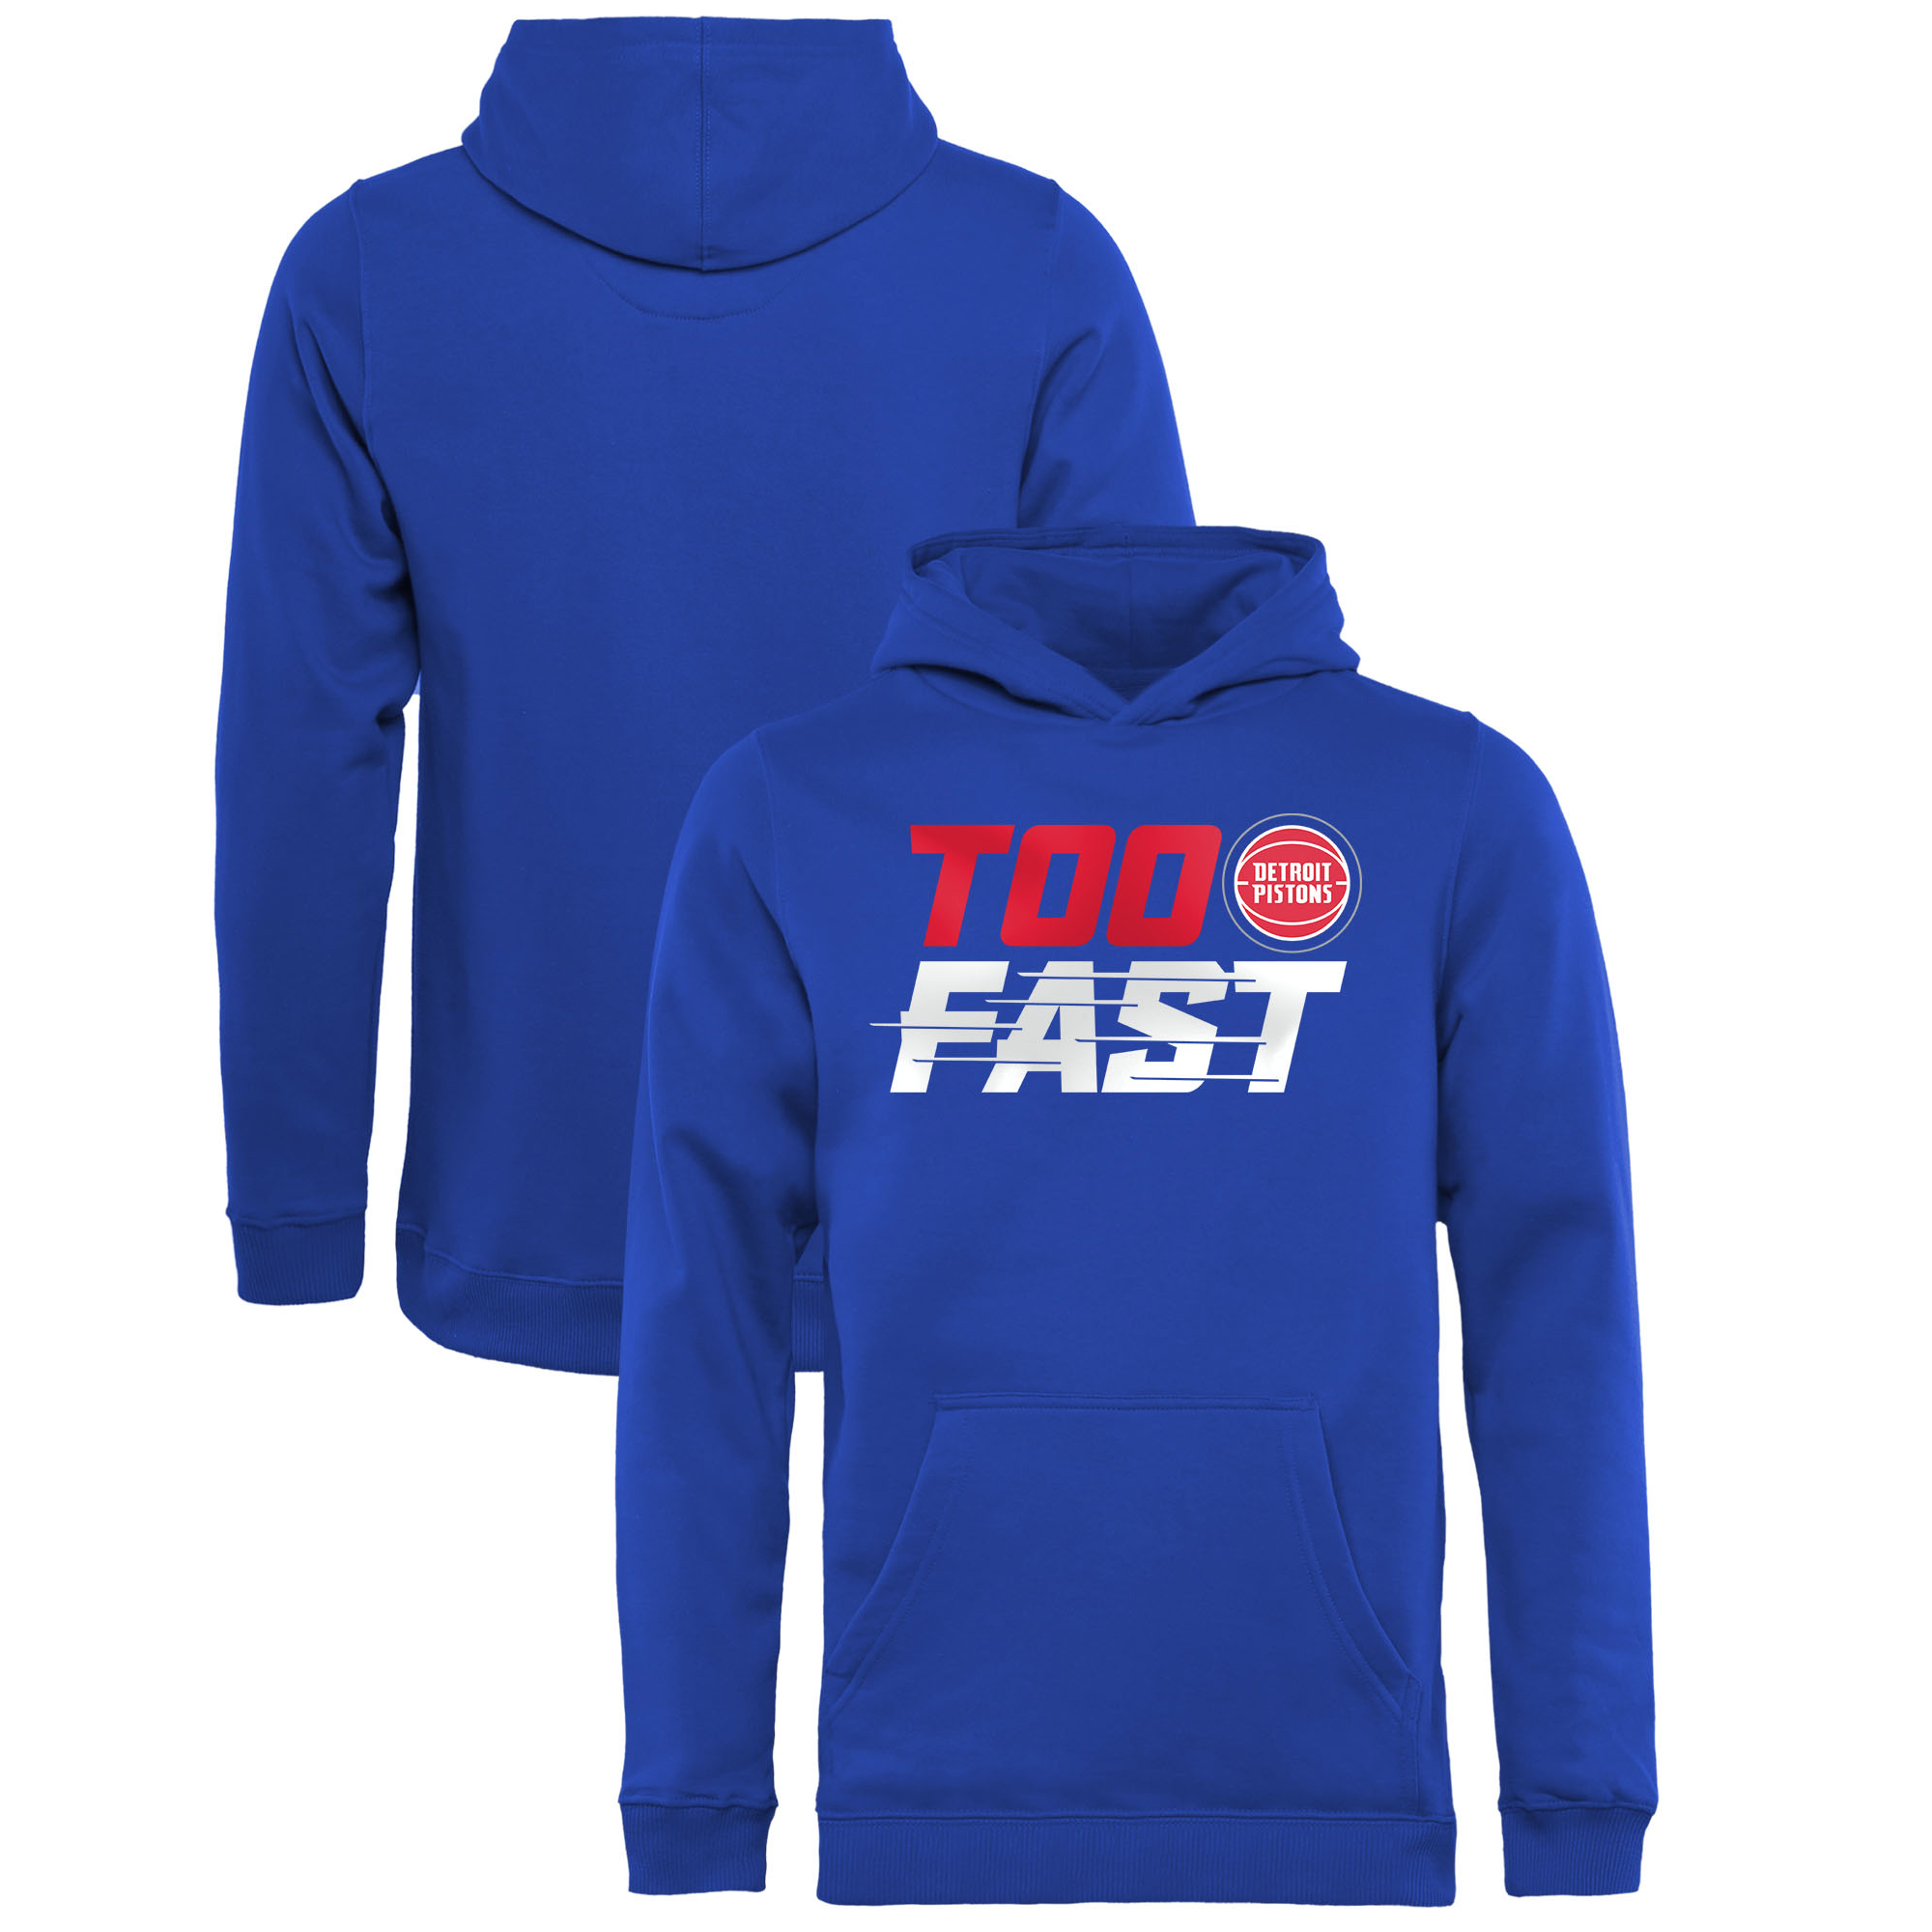 Detroit Pistons Fanatics Branded Youth Too Fast Pullover Hoodie - Blue